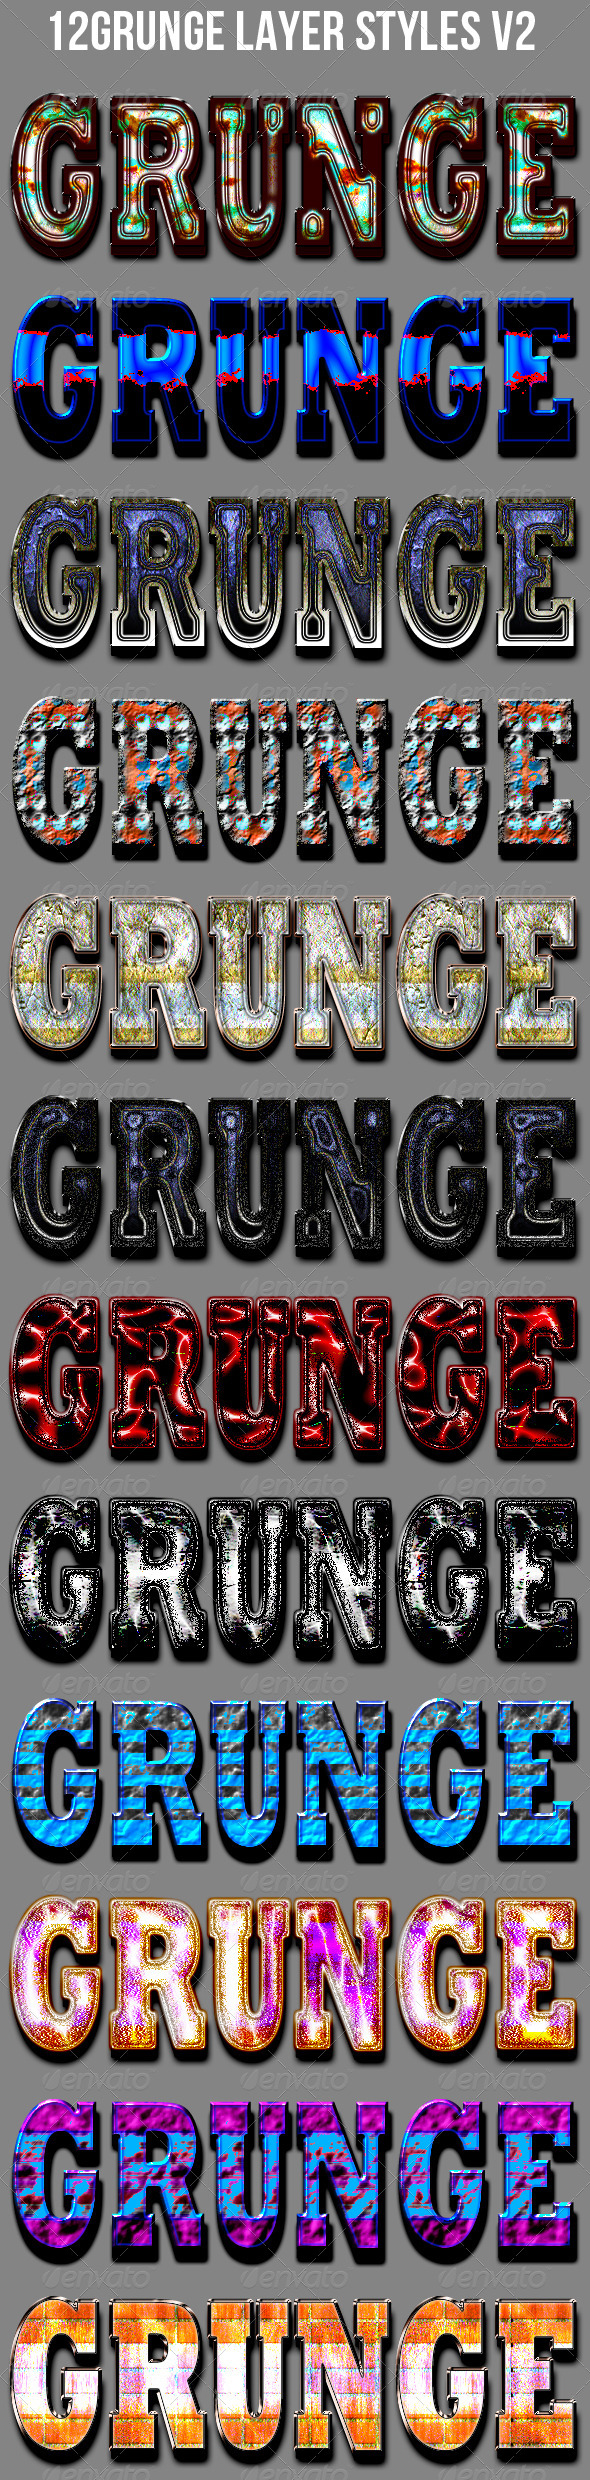 GraphicRiver 12 Grunge Layer Styles V2 6844360